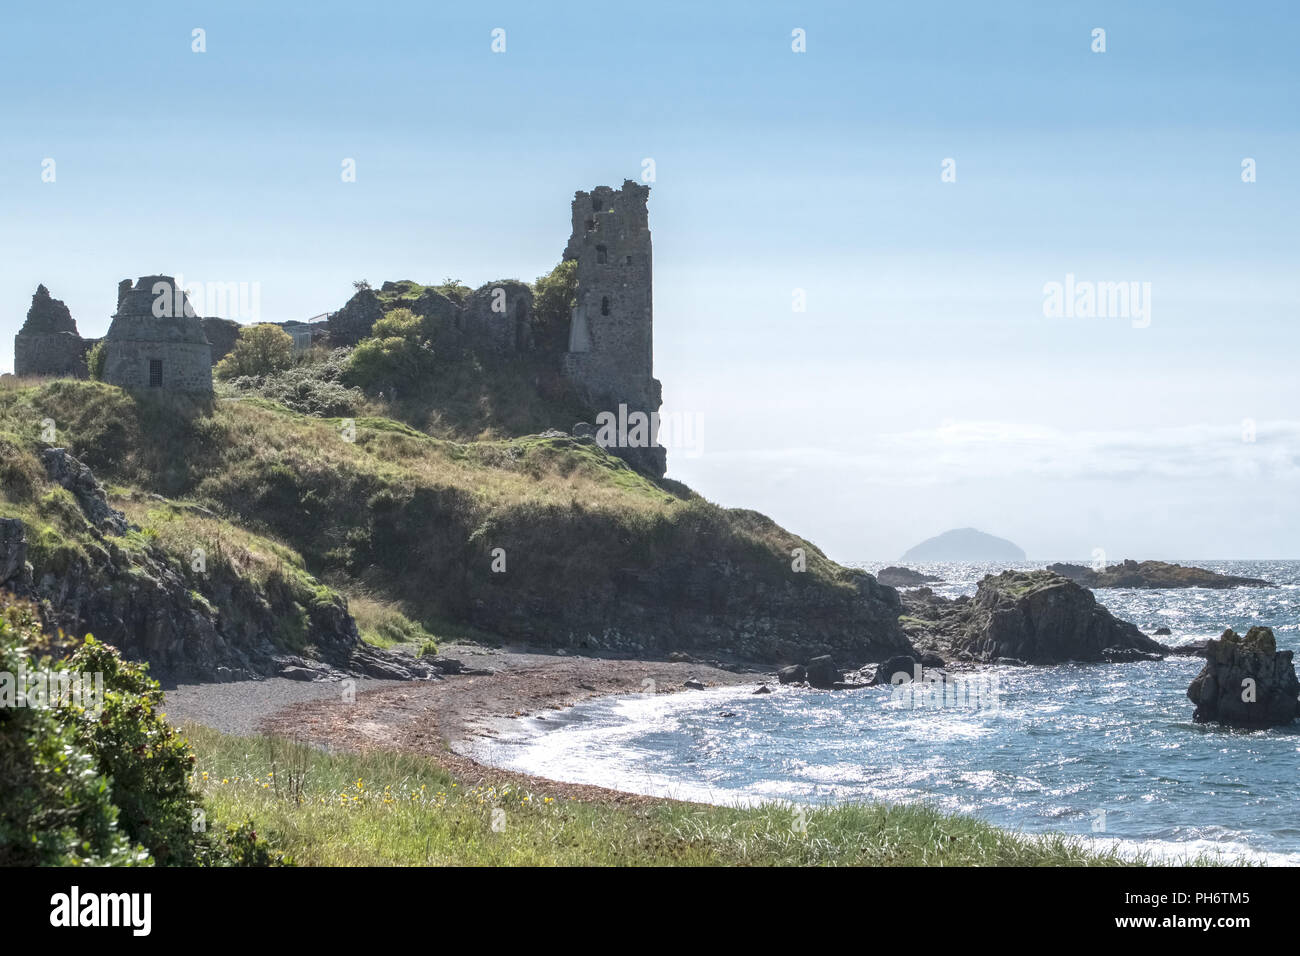 The ancient ruins of Castle Dunure with Ailsa Craig in the hazy distance taken on a warm  hazy sunny day and is a good image for Scotland's tourism. - Stock Image